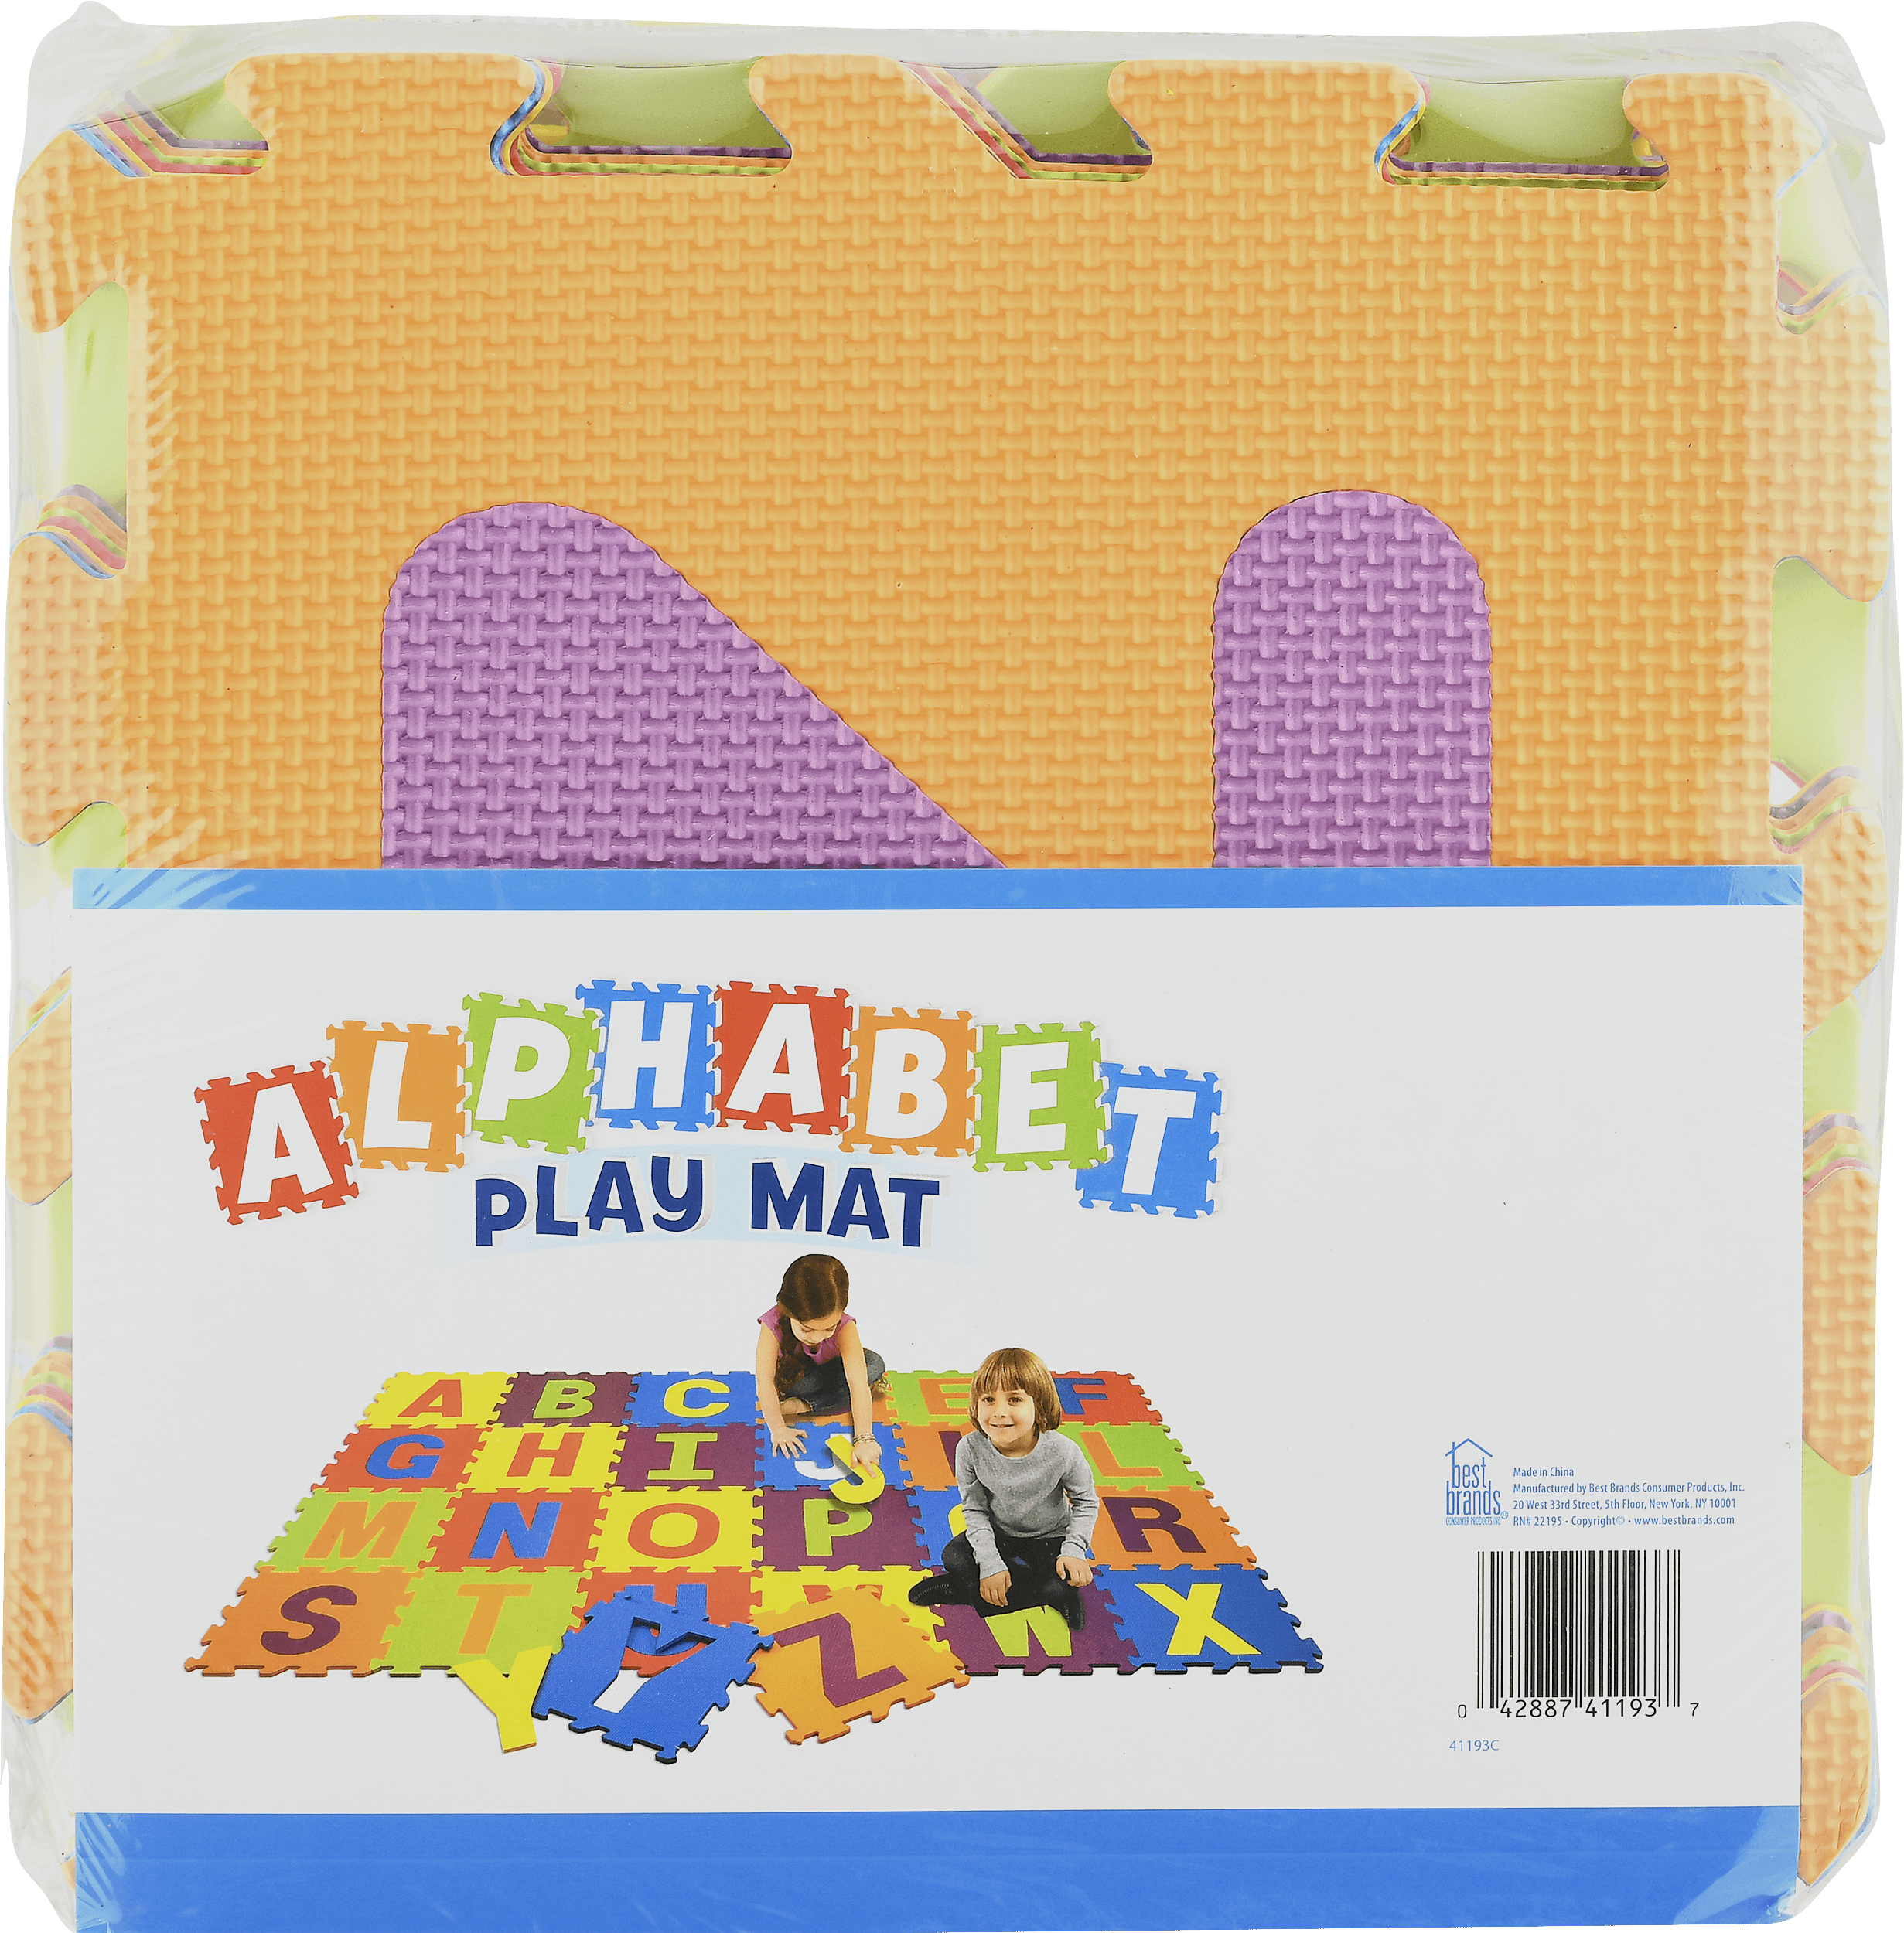 Alphabet 4u0027 X 4u0027 Activity Play Mat Image ...